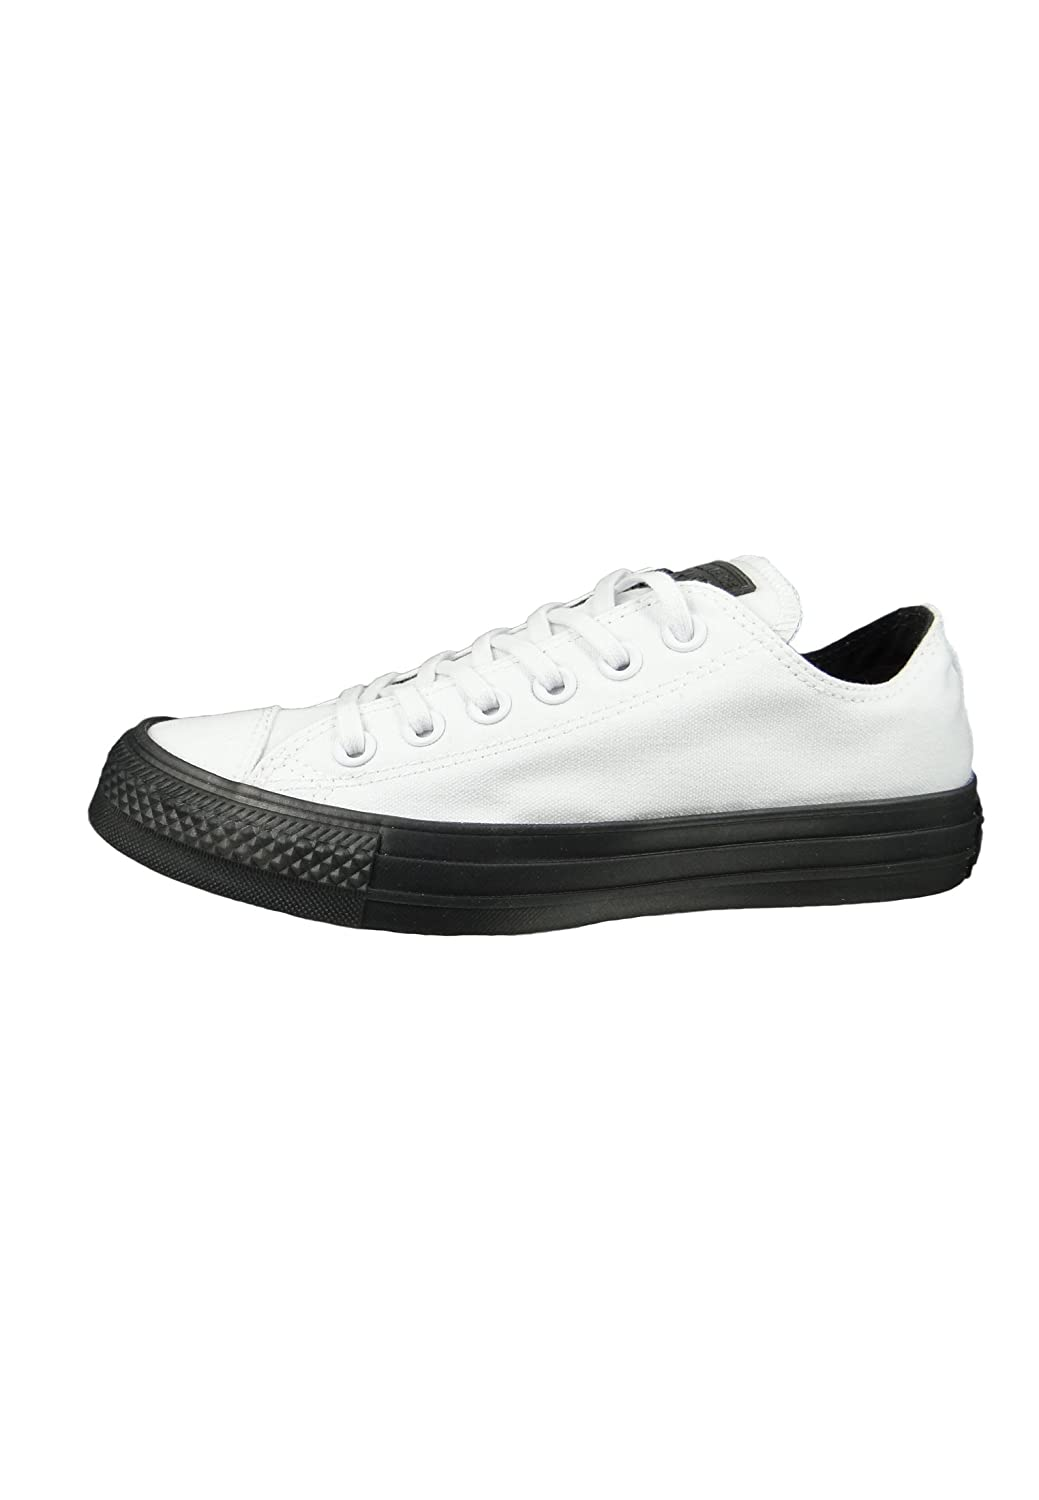 Converse Chucks Weiss 560648C Chuck Taylor All Star OX White Almost Black